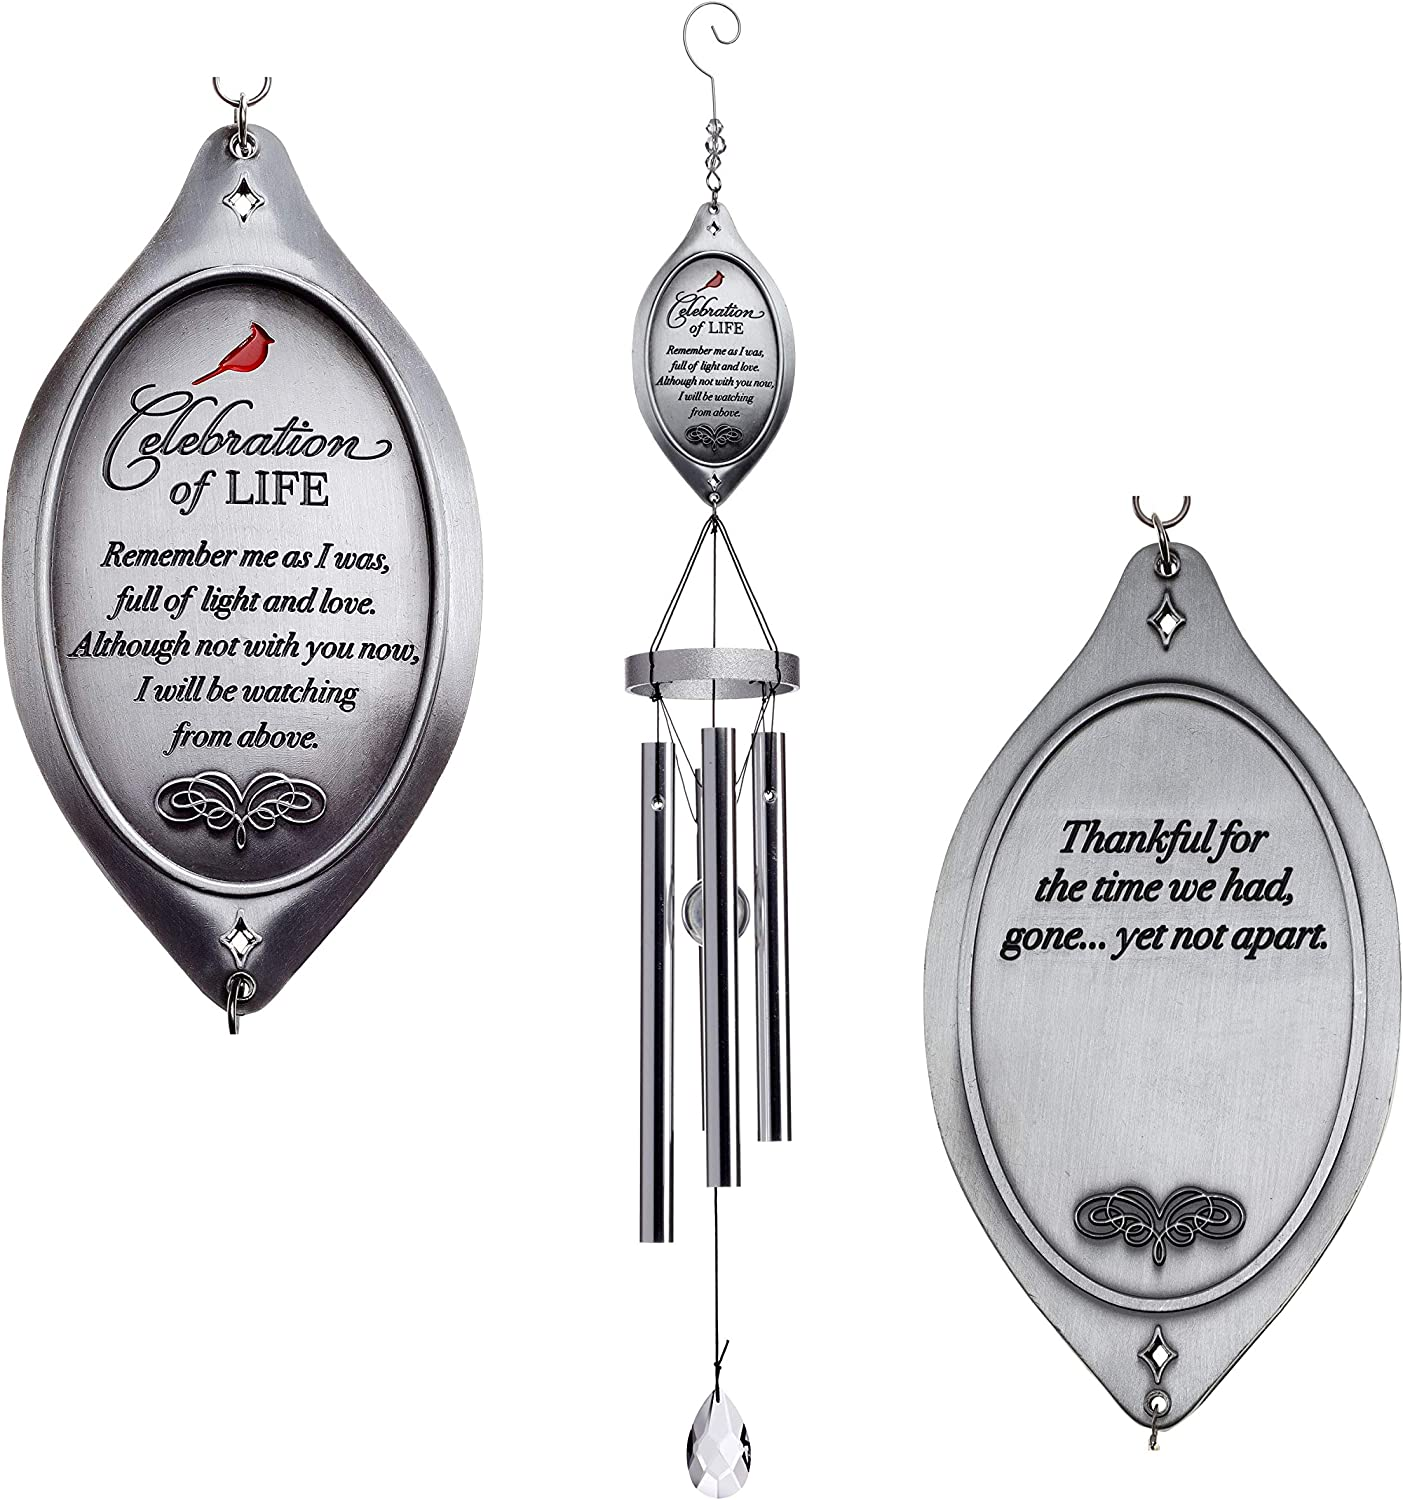 Celebration of Life Memorial Wind Chimes in Memory of Loved One - Ideal Sympathy Gift/BereavementGift: Home & Kitchen